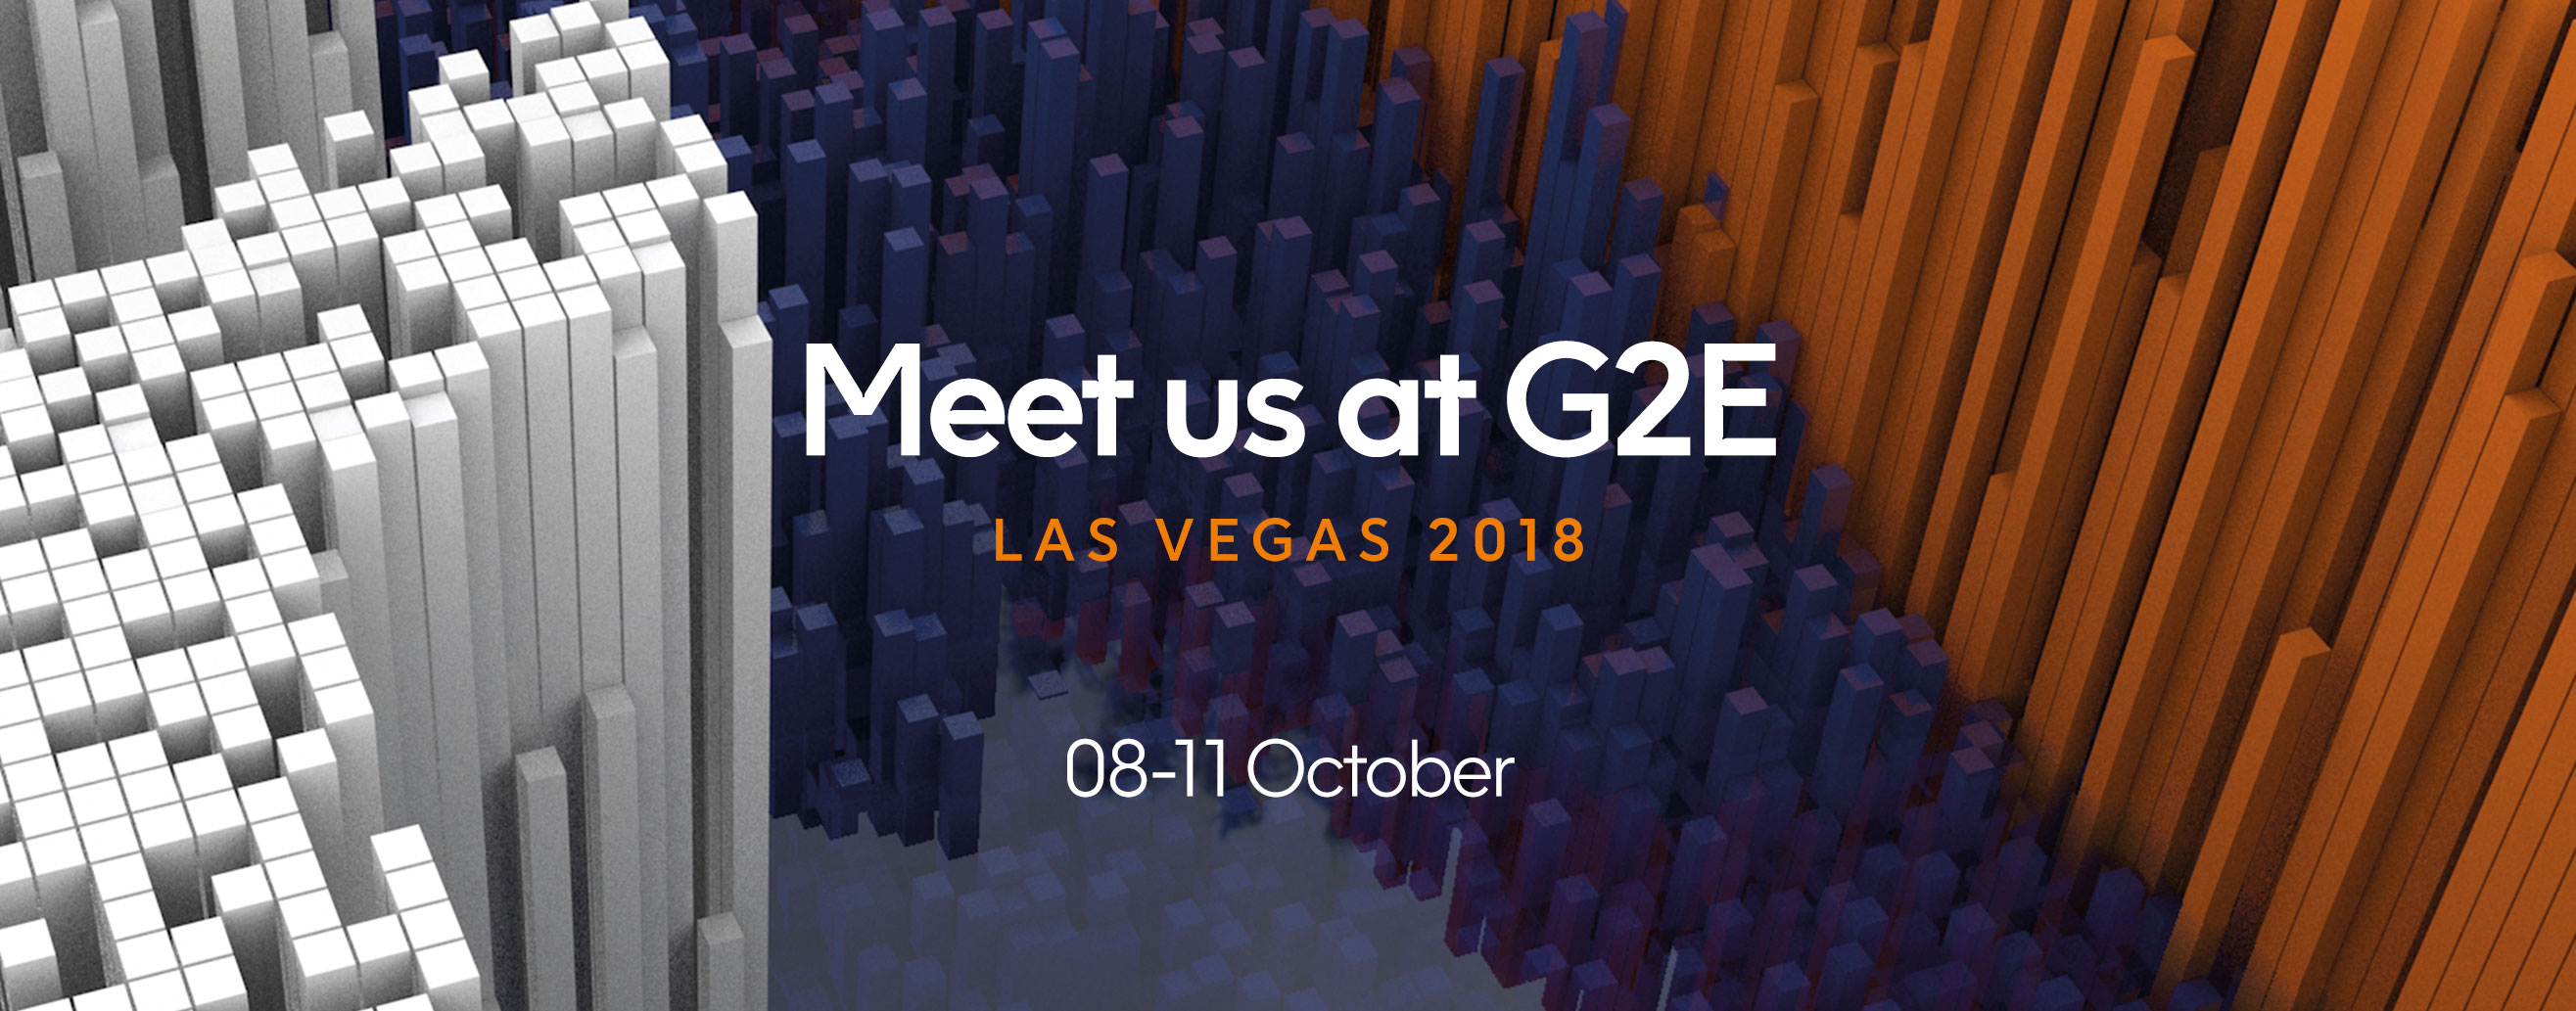 Global Gaming Expo - G2E Las Vegas 2018